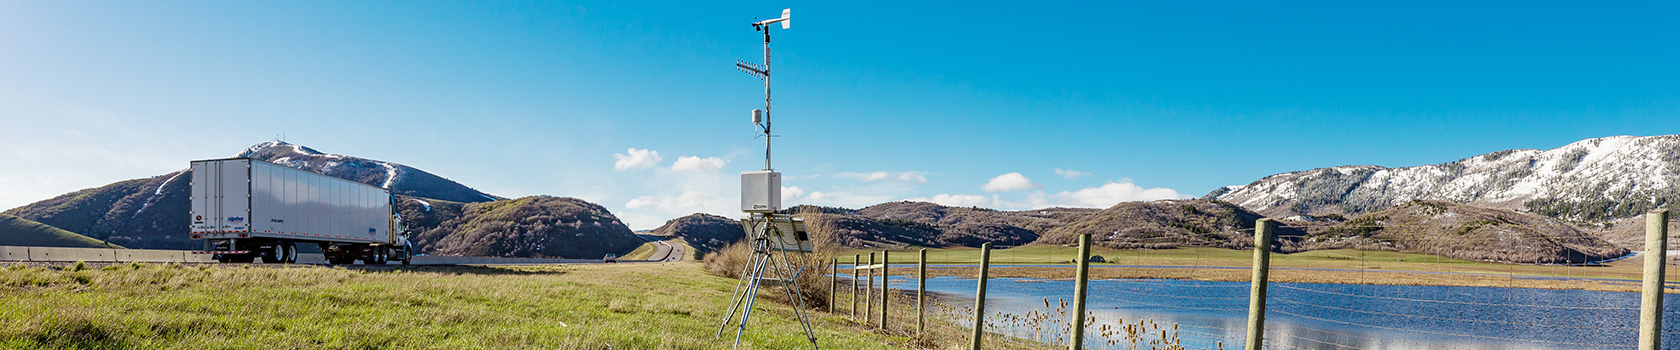 Road Weather—RWIS Road-weather information systems and weather stations